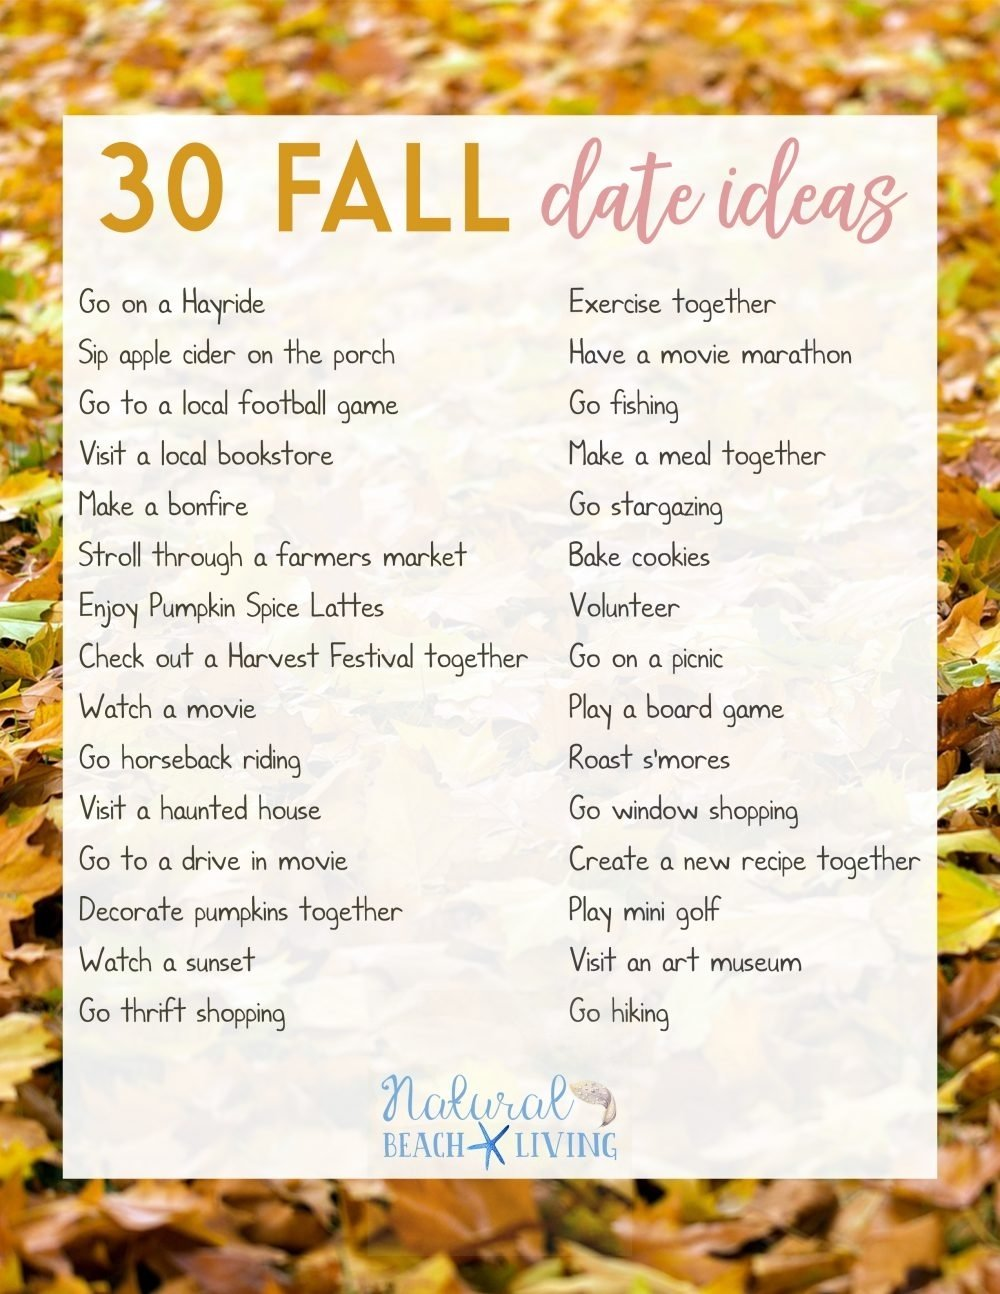 10 Most Recommended Free Date Ideas For Couples fun date night ideas for fall natural beach living 9 2021